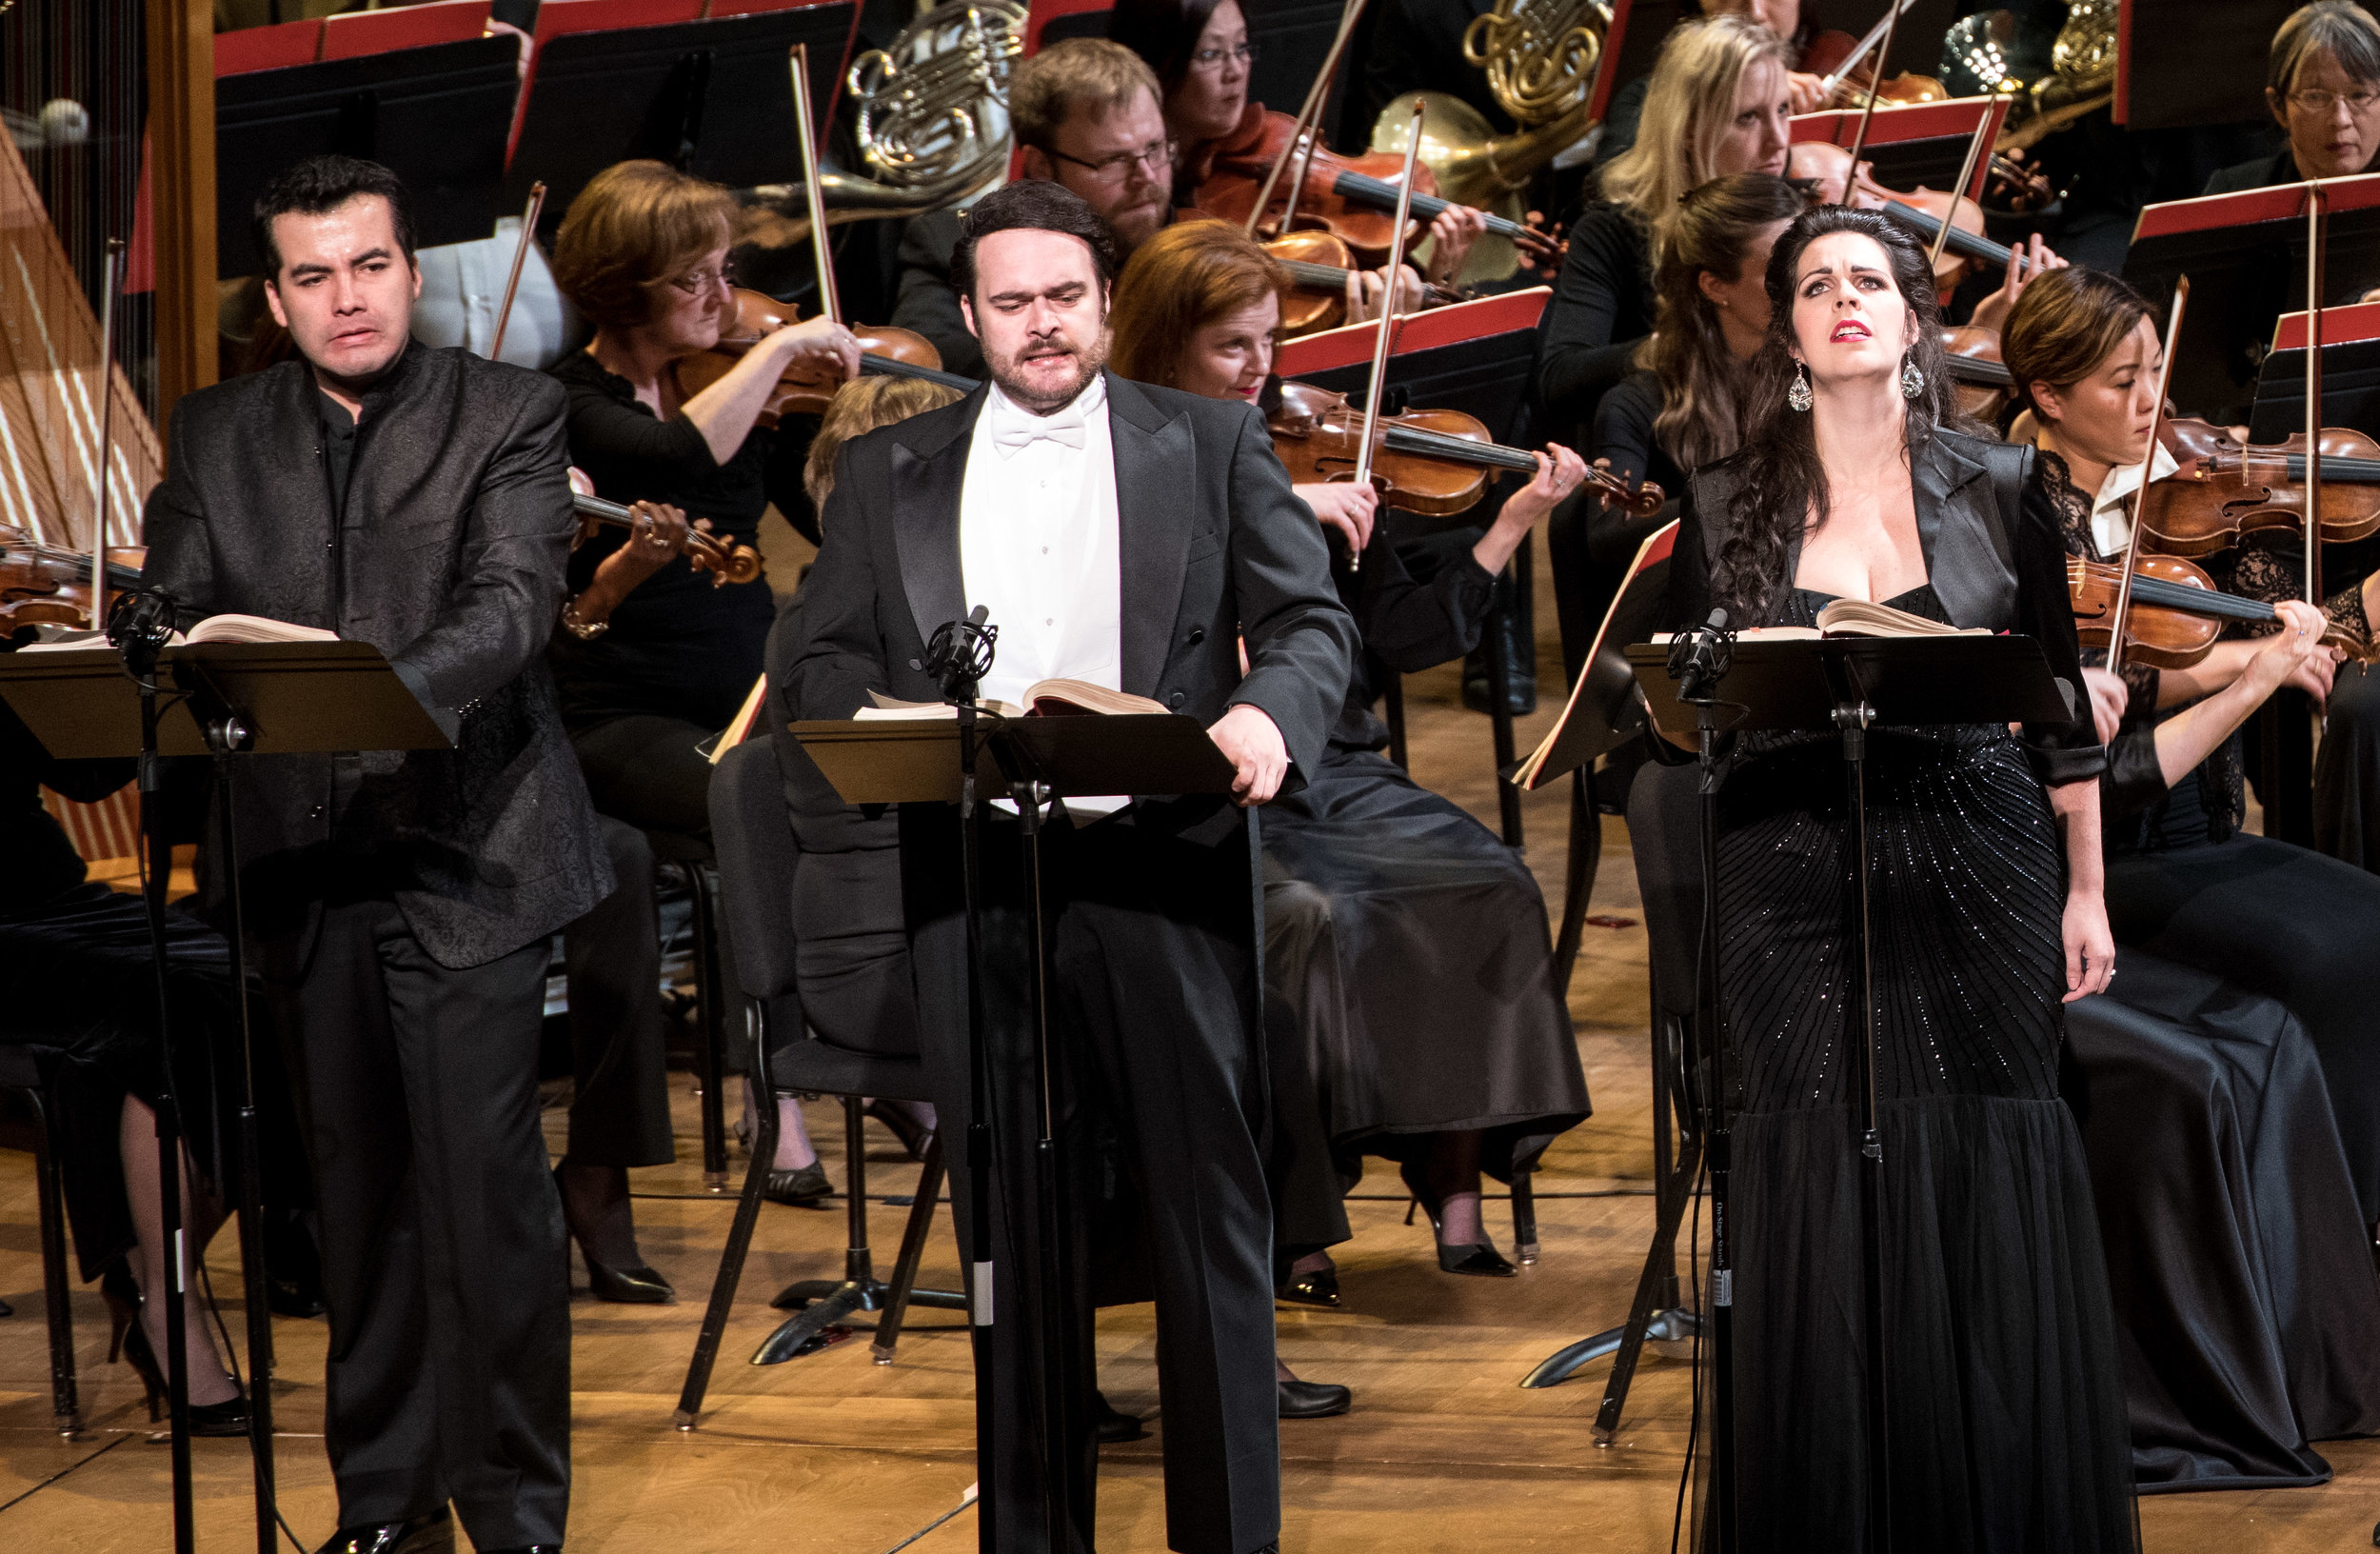 Javier Arrey as Valdeburgo, Gerald Schneider as Arturo, and Amanda Woodbury as Alaide. Photo by Don Lassell; courtesy of Washington Concert Opera.